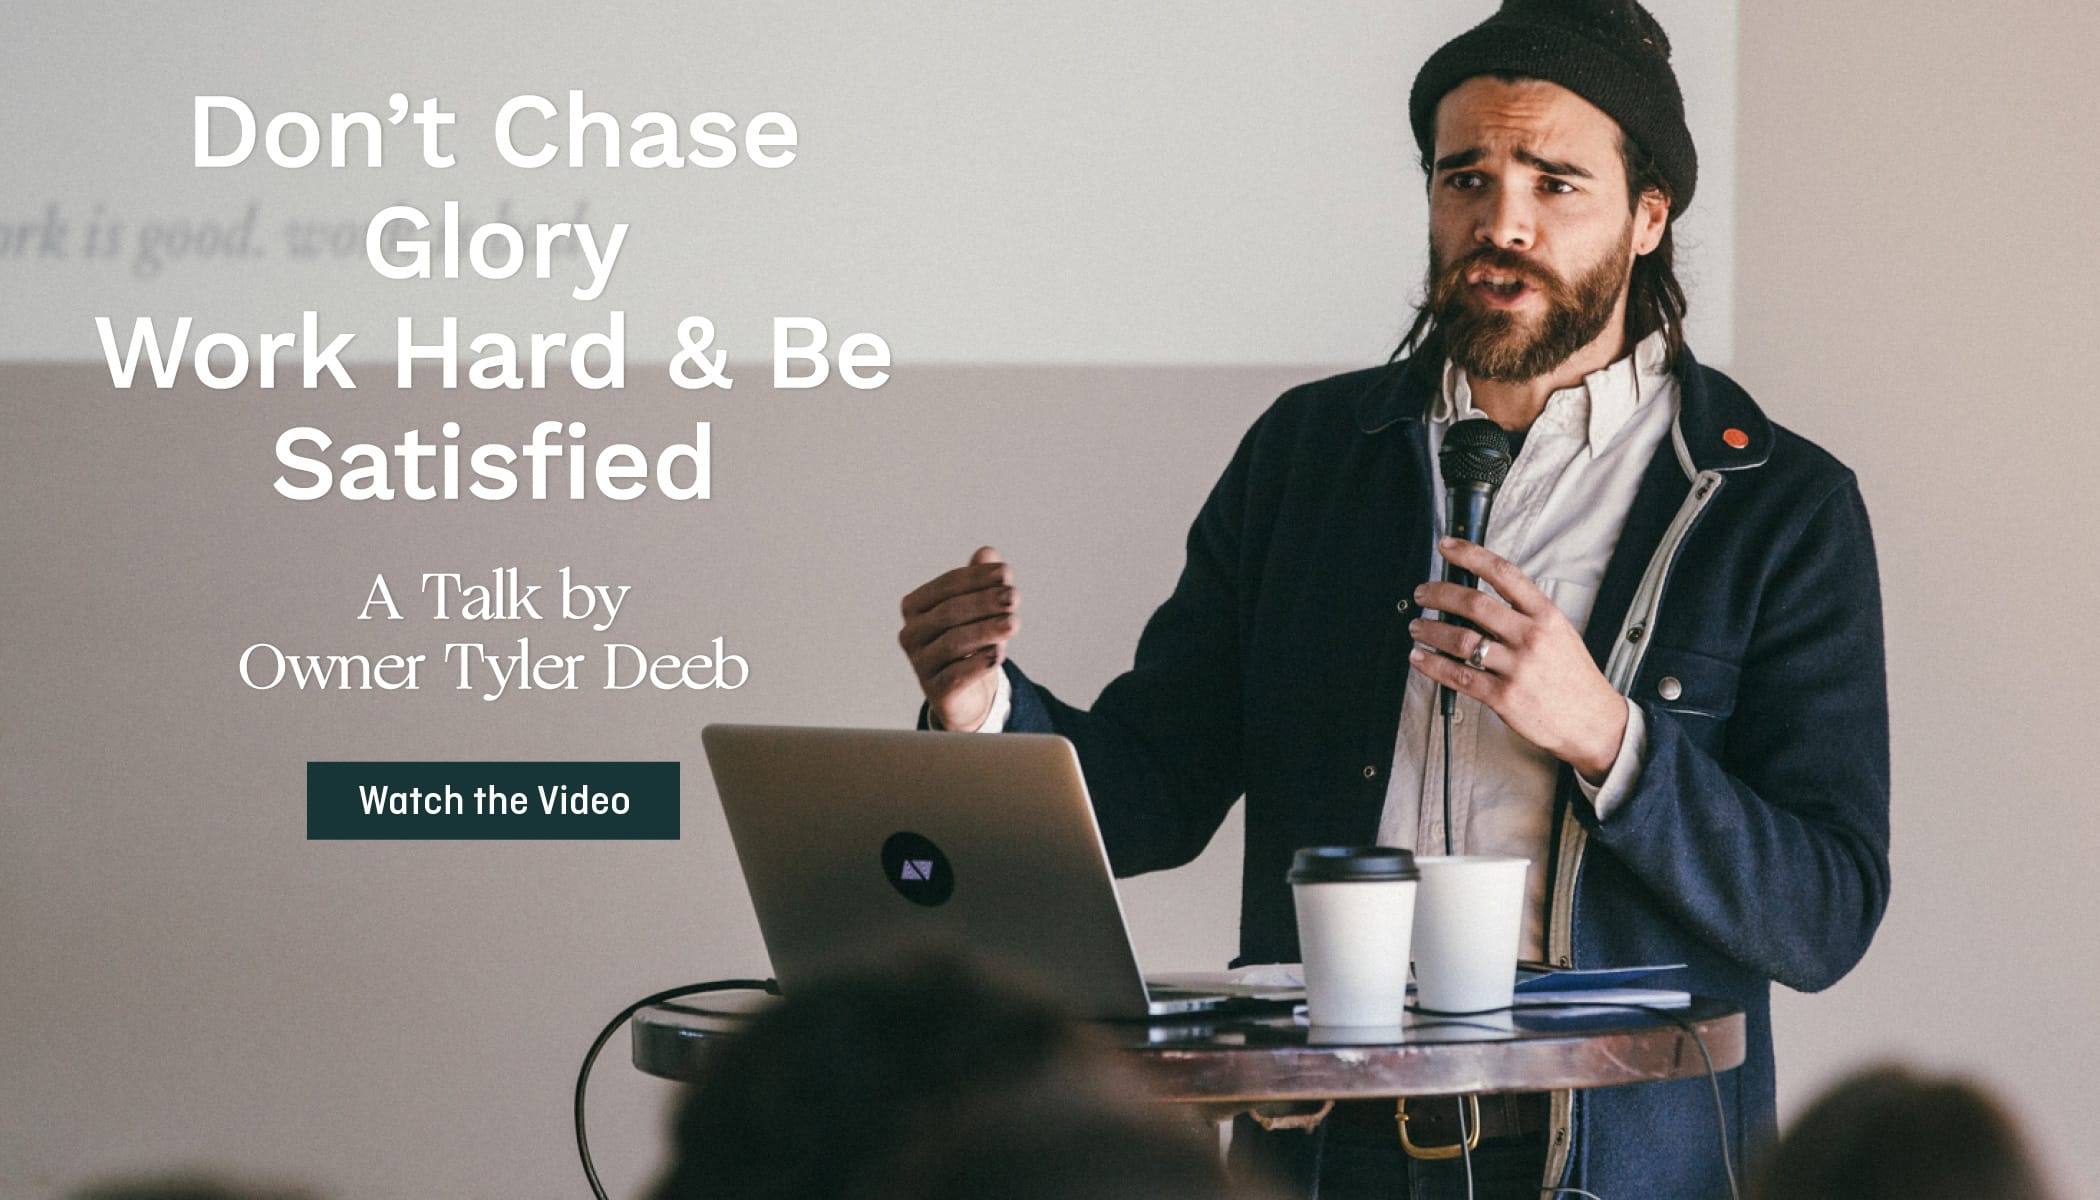 Don't Chase Glory. Work Hard & Be Satisfied - A Talk by Owner Tyler Deeb